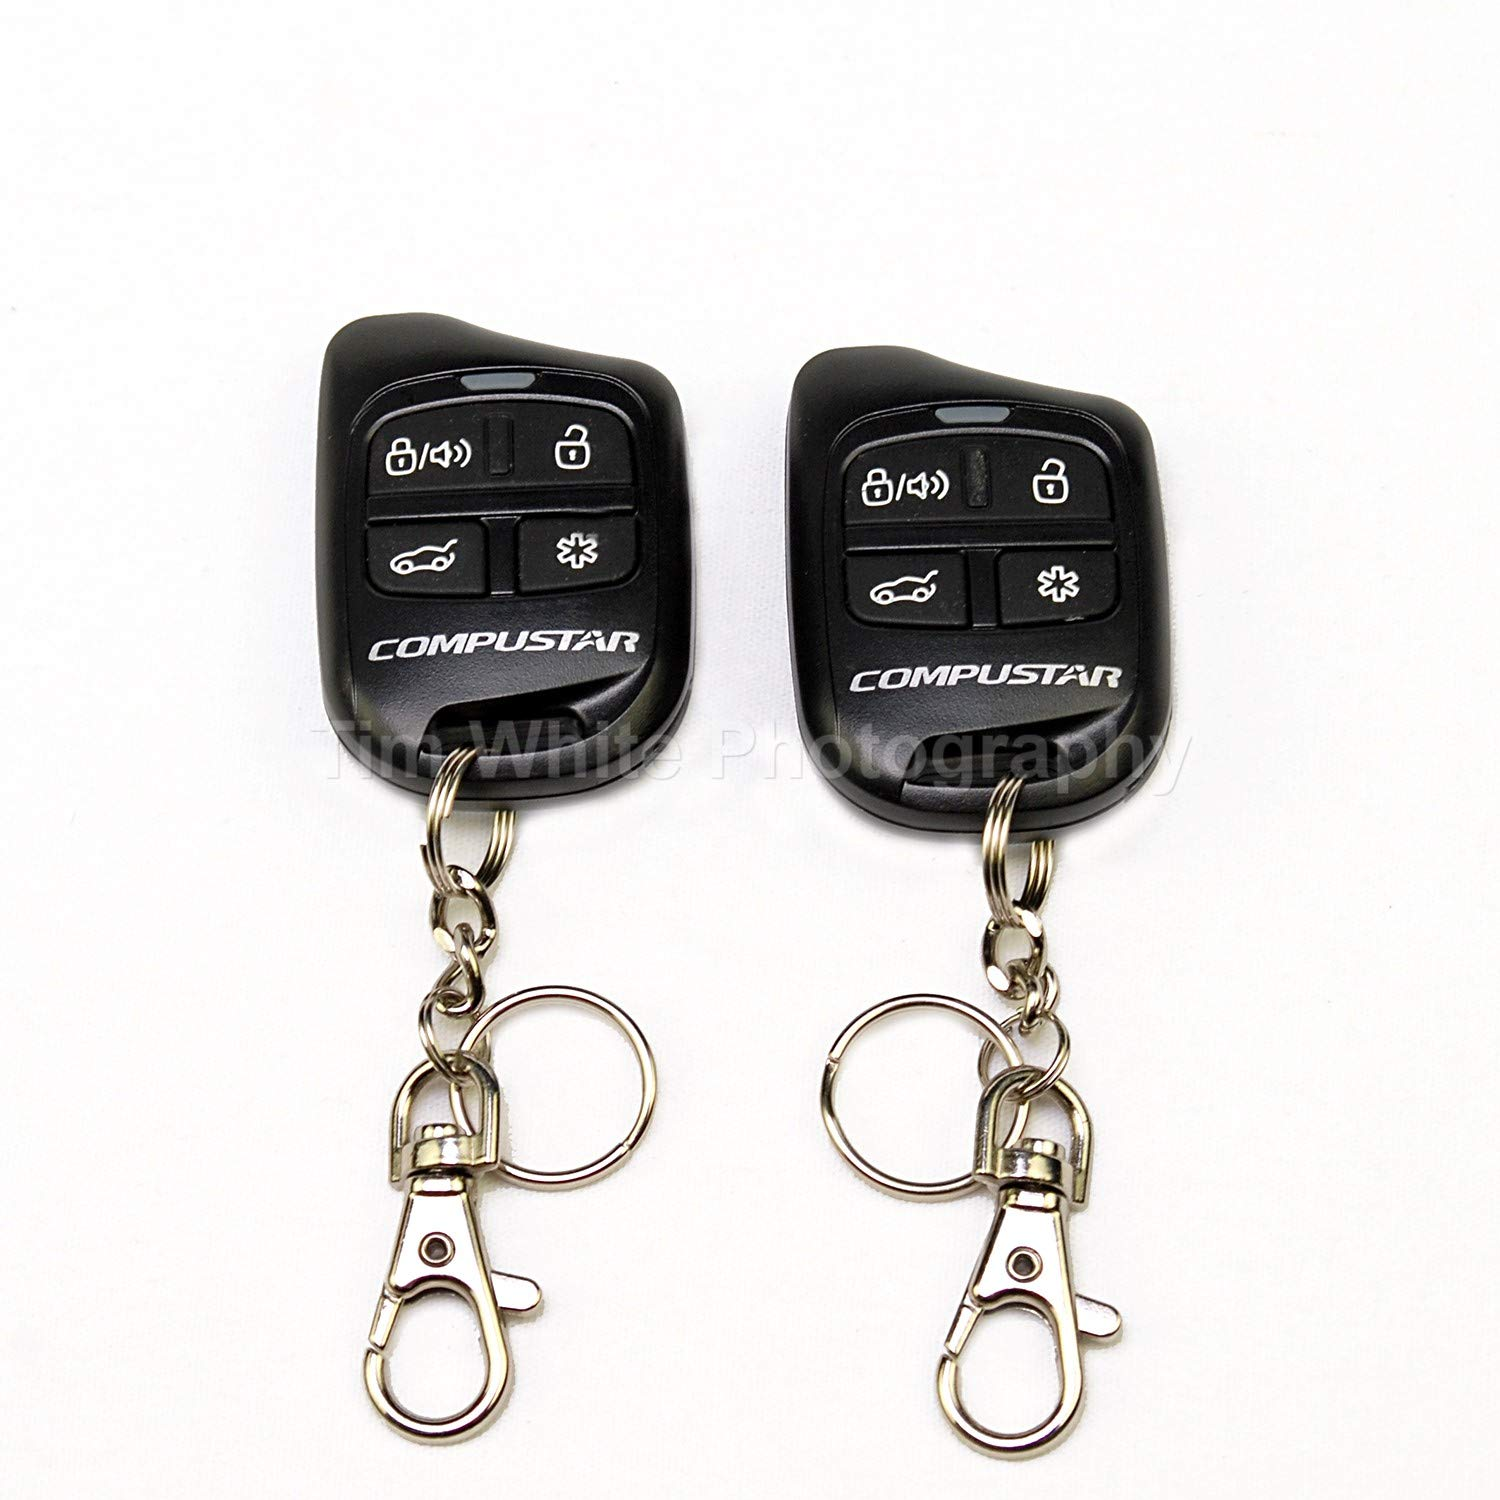 Compustar CS920-S (920S) 1-way Remote Start and Keyless Entry System with 1000-ft Range by Compustar (Image #2)